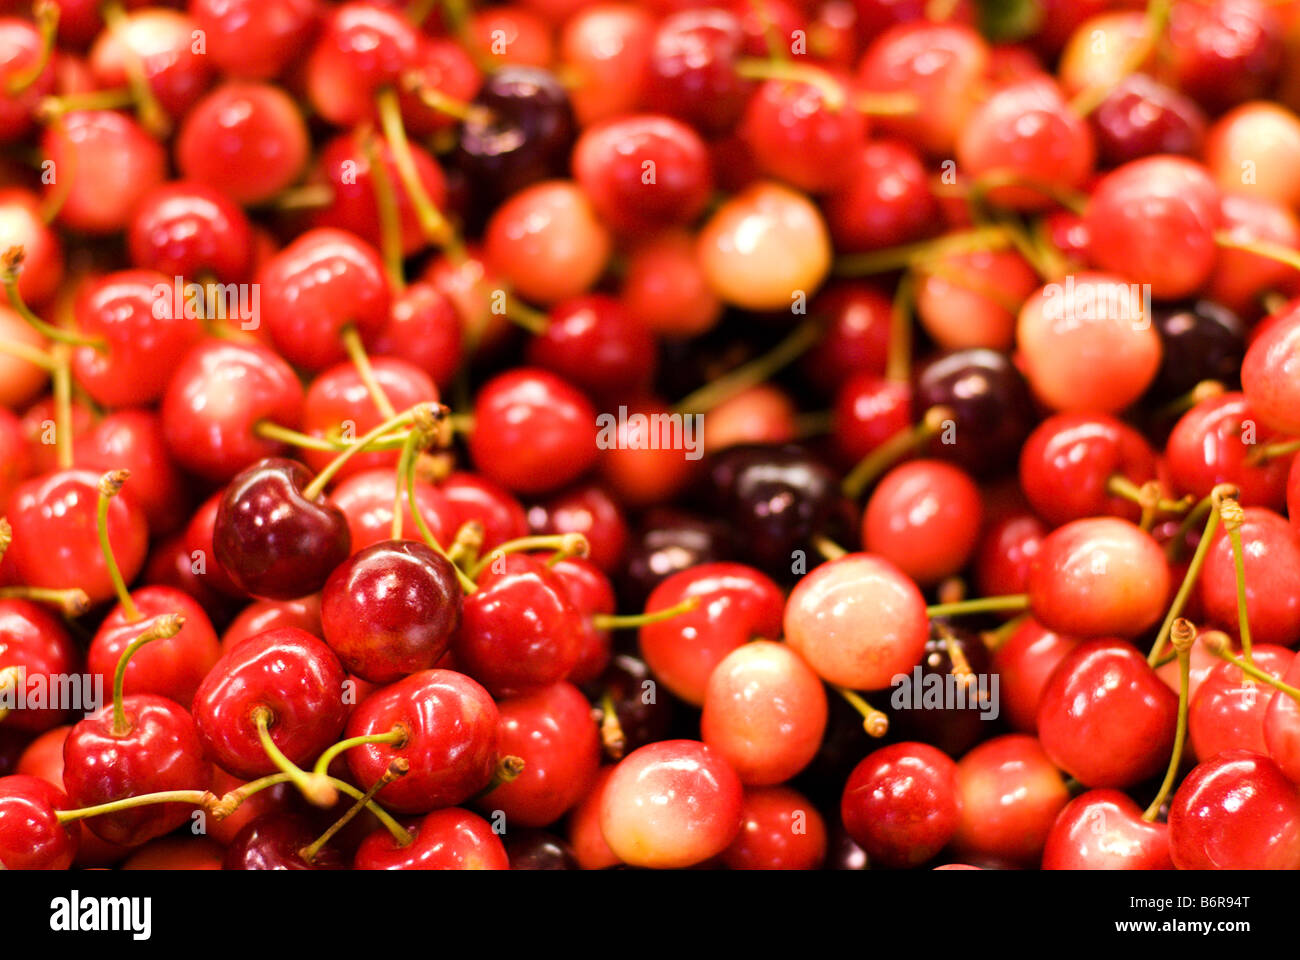 Light Shop Adelaide Light Red Cherries A Traditional Christmas Fruit In Australia For